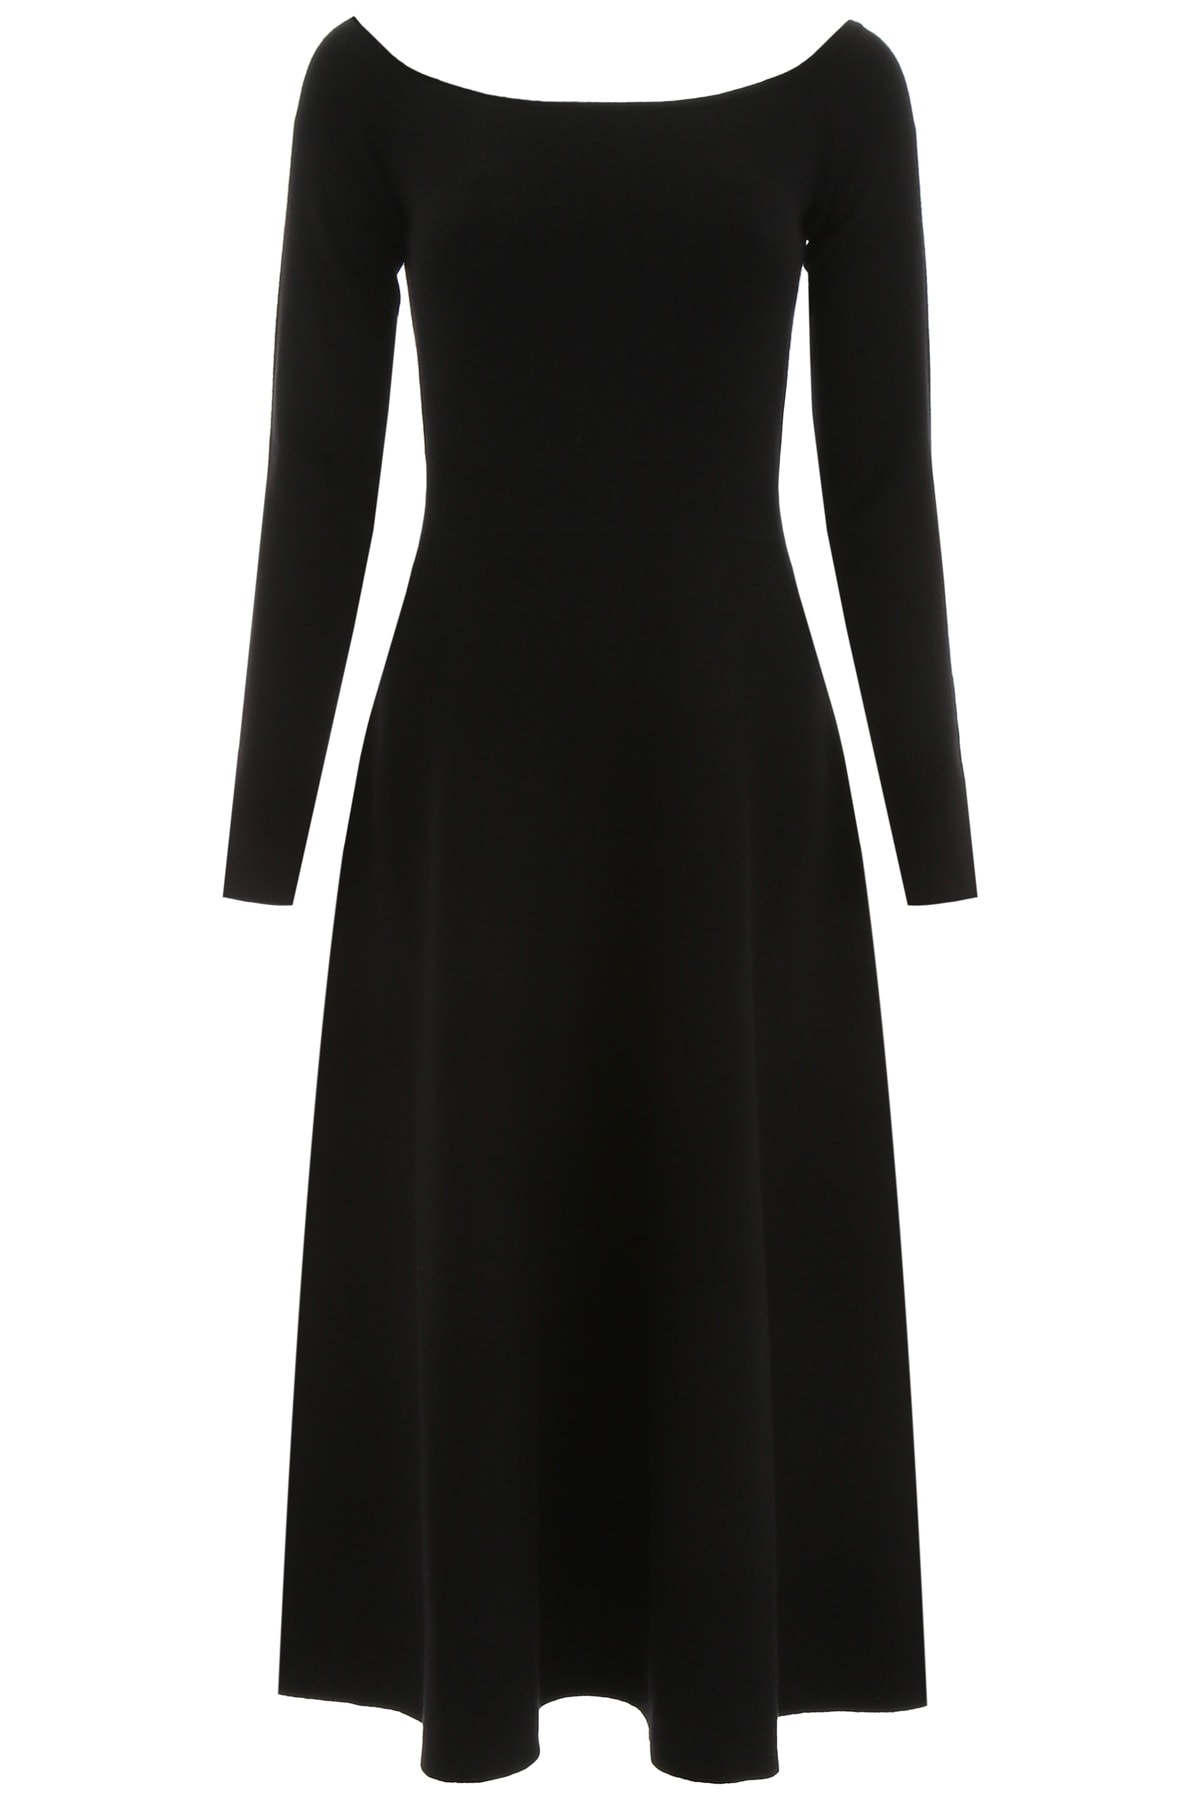 Gabriela Hearst Gurshka Midi Dress